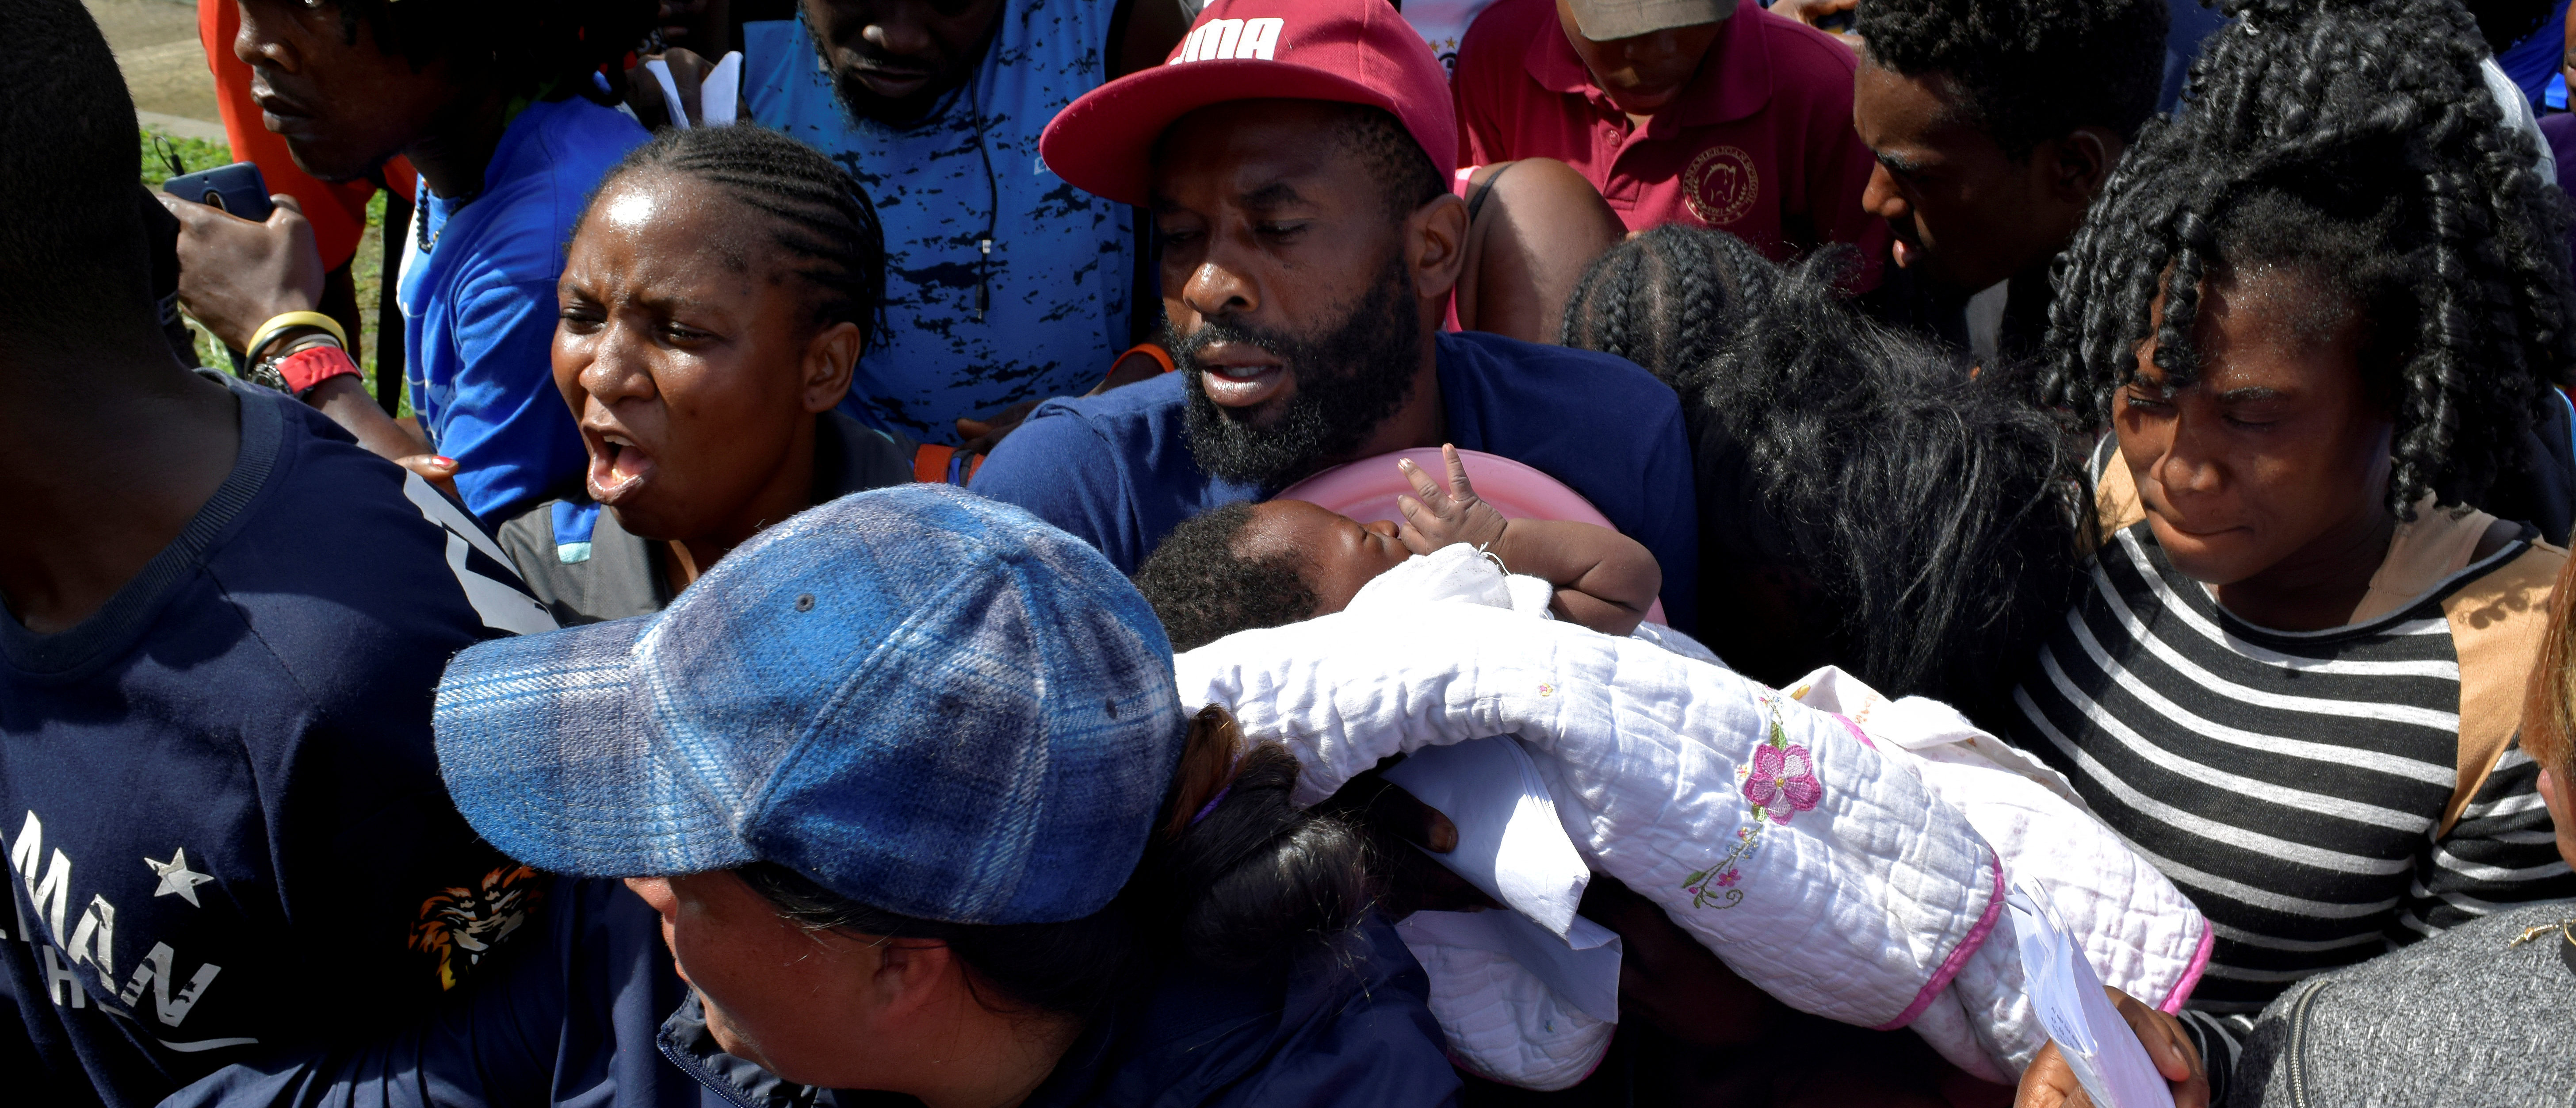 FILE PHOTO: A migrant from Cameroon holds his baby while trying to enter the Siglo XXI immigrant detention center to request humanitarian visas, issued by the Mexican government, to cross the country towards the United States, in Tapachula, Mexico June 27, 2019. REUTERS/Jose Torres